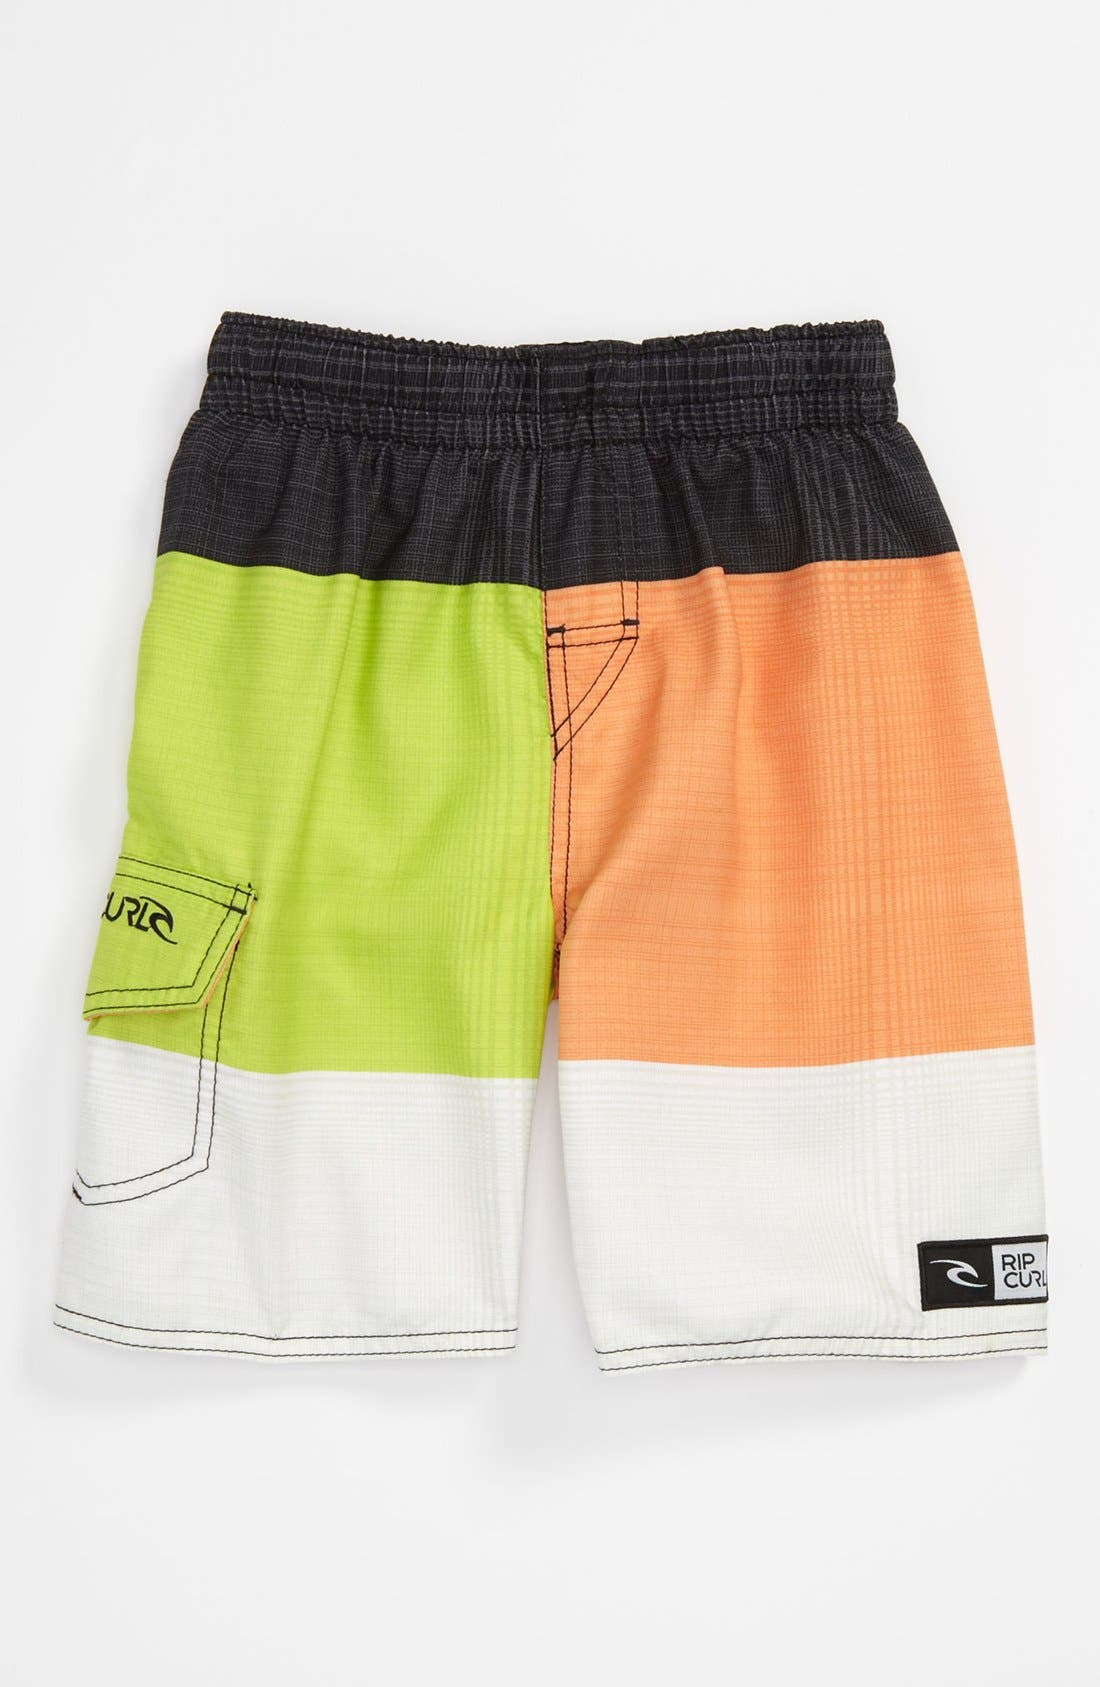 Alternate Image 1 Selected - Rip Curl 'Aggrosections' Volley Shorts (Little Boys)